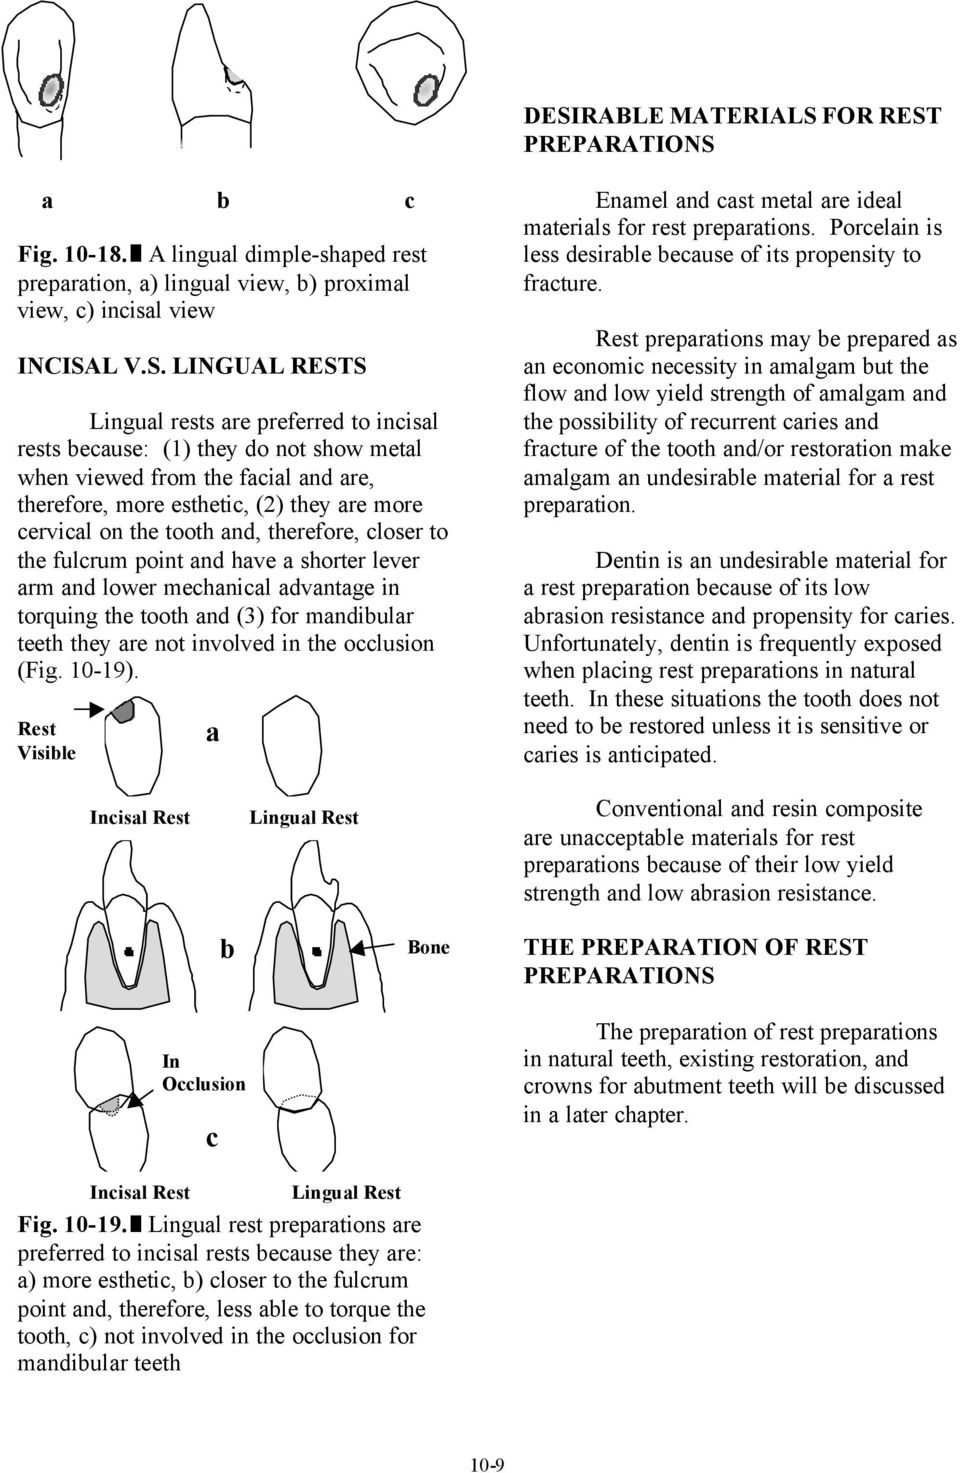 and have a shorter lever arm and lower mechanical advantage in torquing the tooth and (3) for mandibular teeth they are not involved in the occlusion (Fig. 10-19).